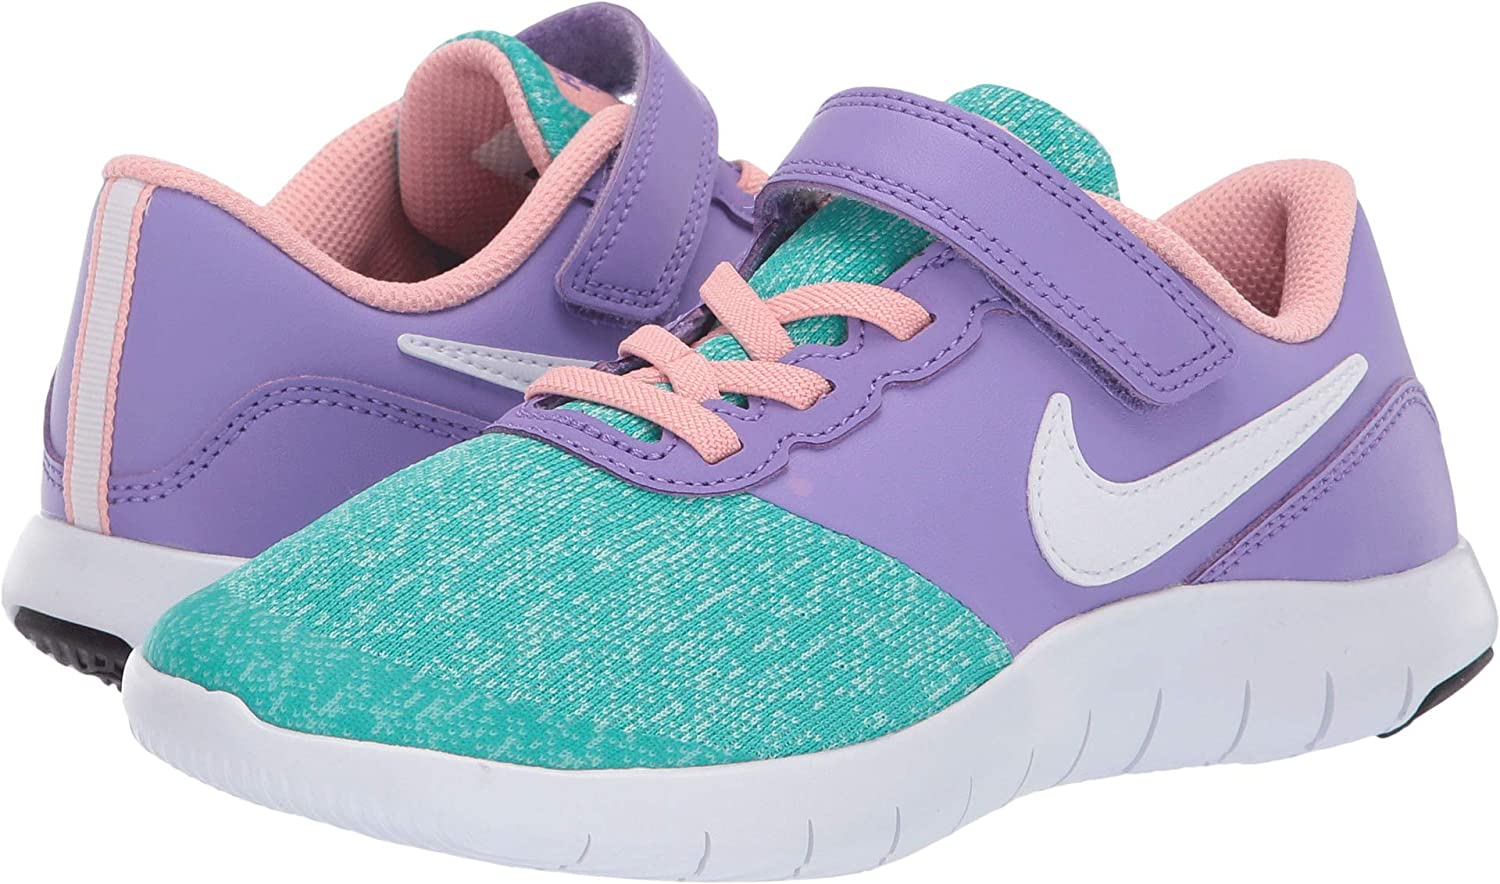 Boys Girls Nike Hook And Loop Padded